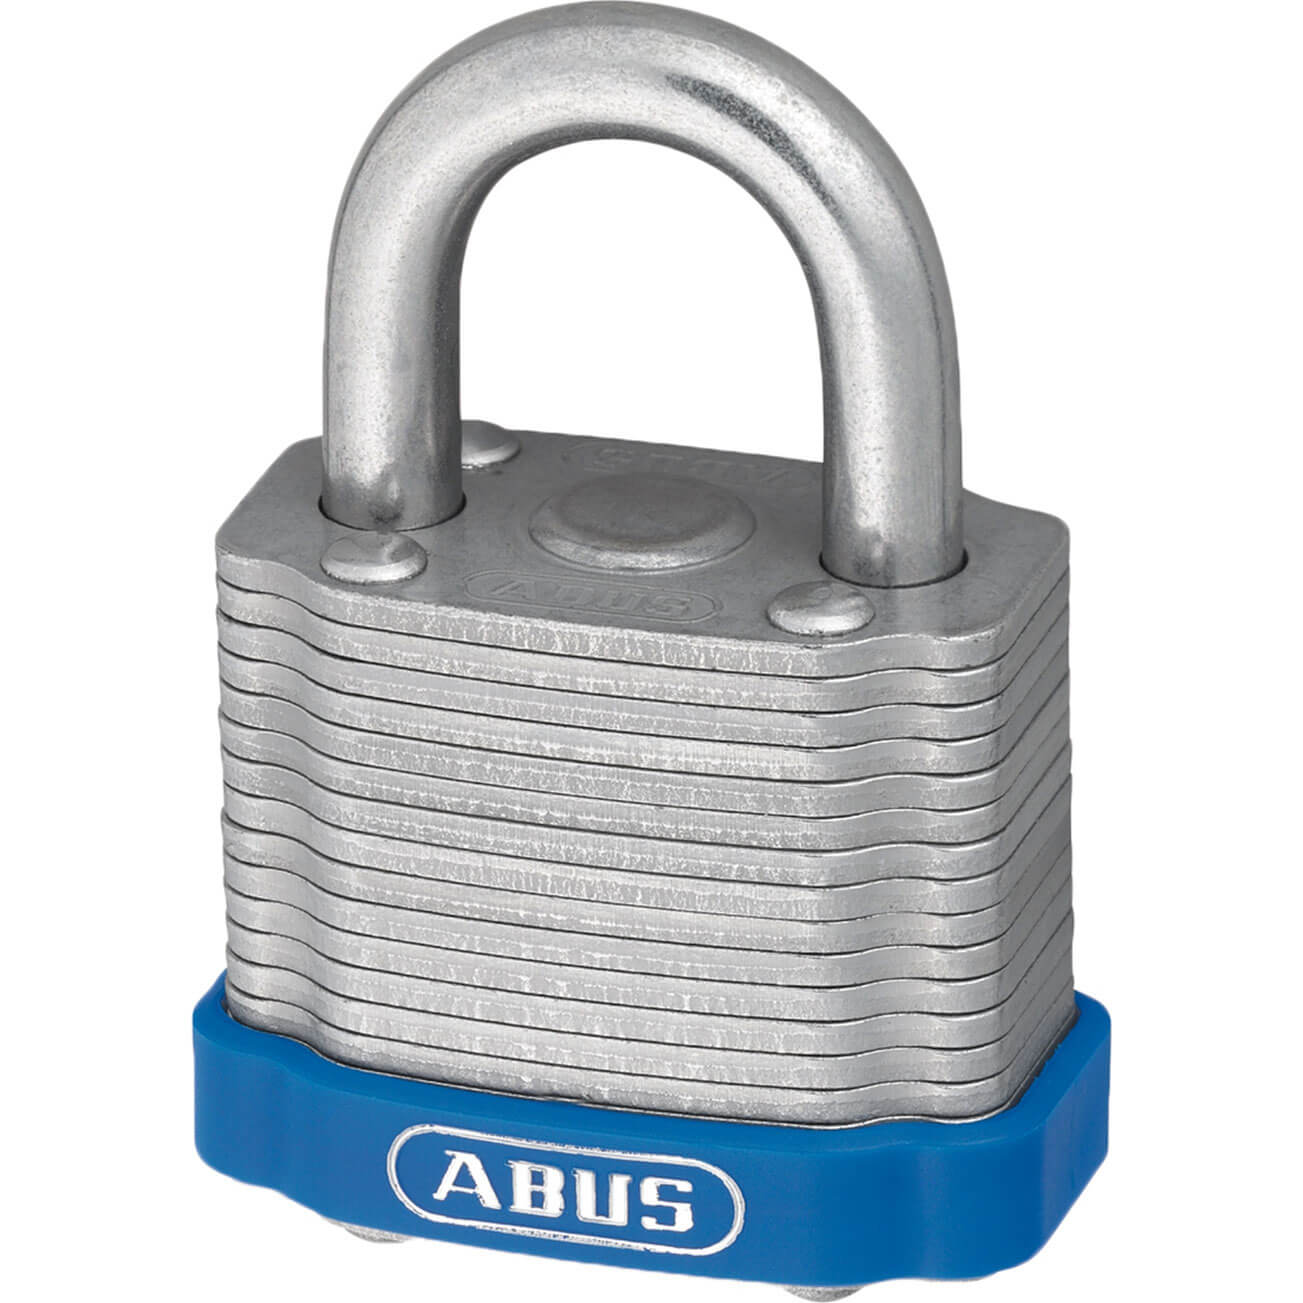 Abus 41 Series Laminated Steel Padlock 45mm Standard